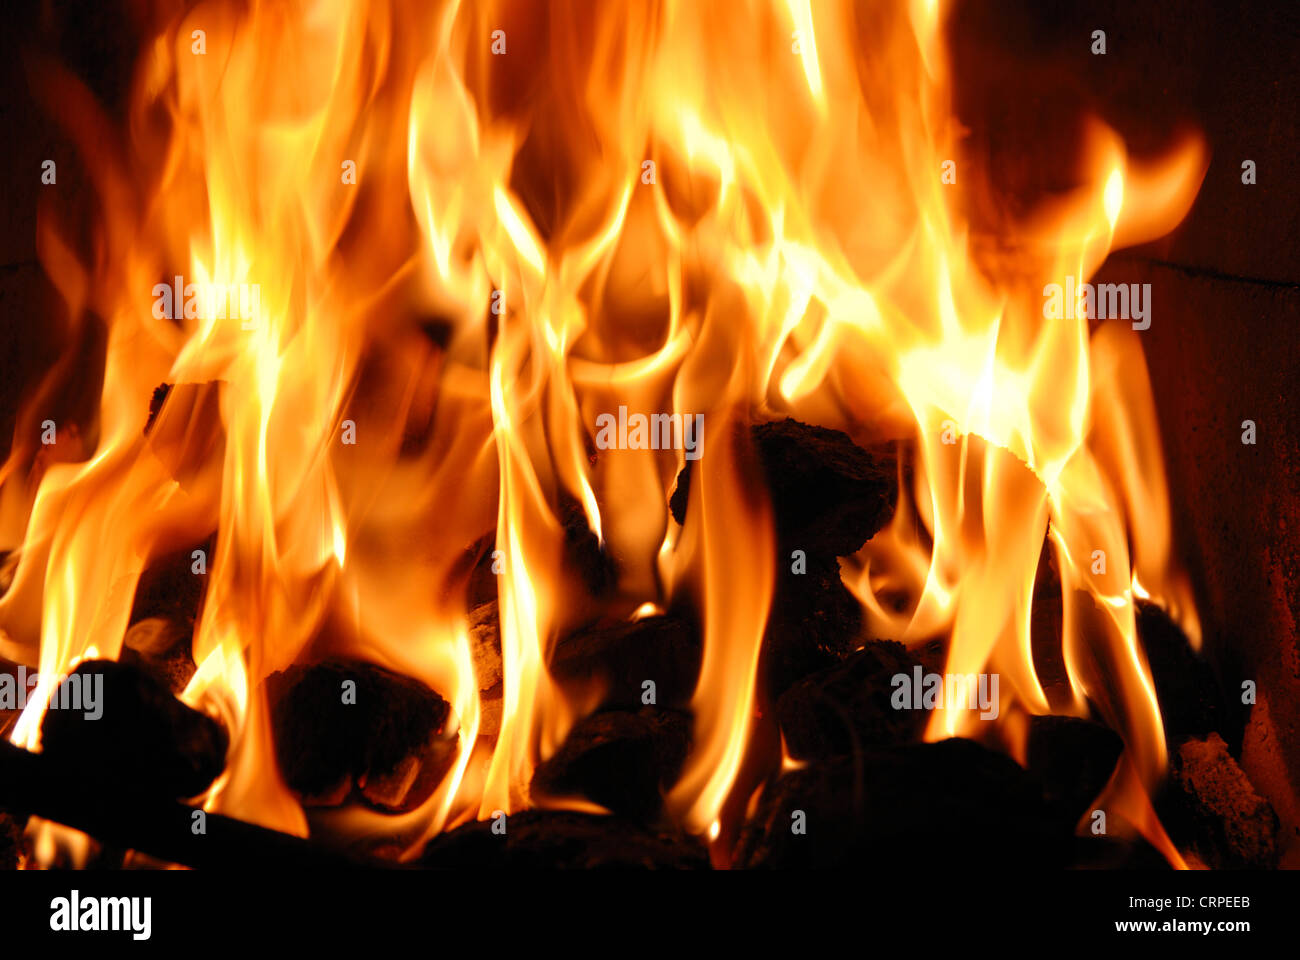 A household coal fire - Stock Image